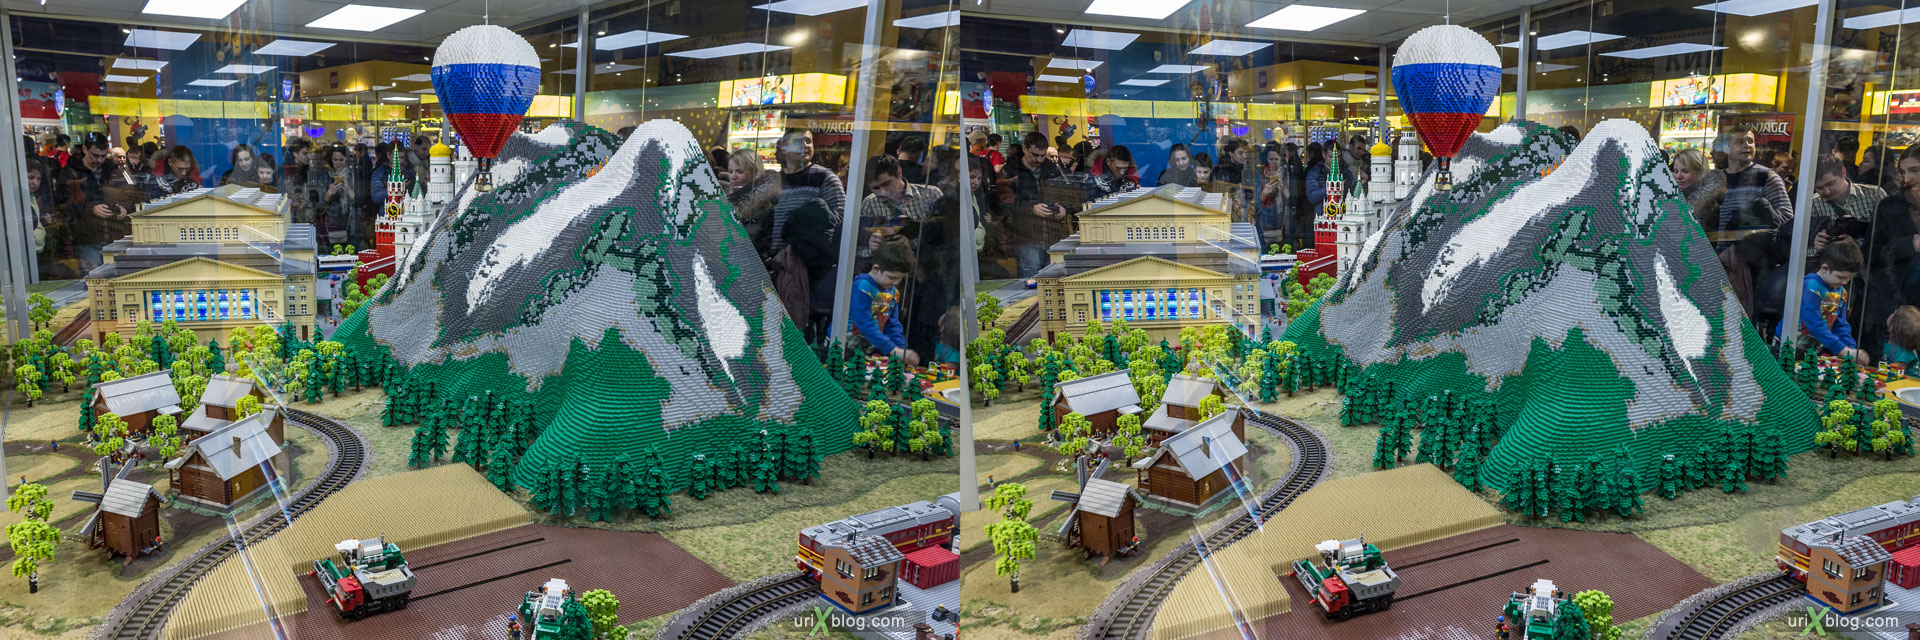 landscape, LEGO, Hamleys-World, Central Childrens World, Shop, Store, Lubyanskaya square, Moscow, Russia, 3D, stereo pair, cross-eyed, crossview, cross view stereo pair, stereoscopic, 2015